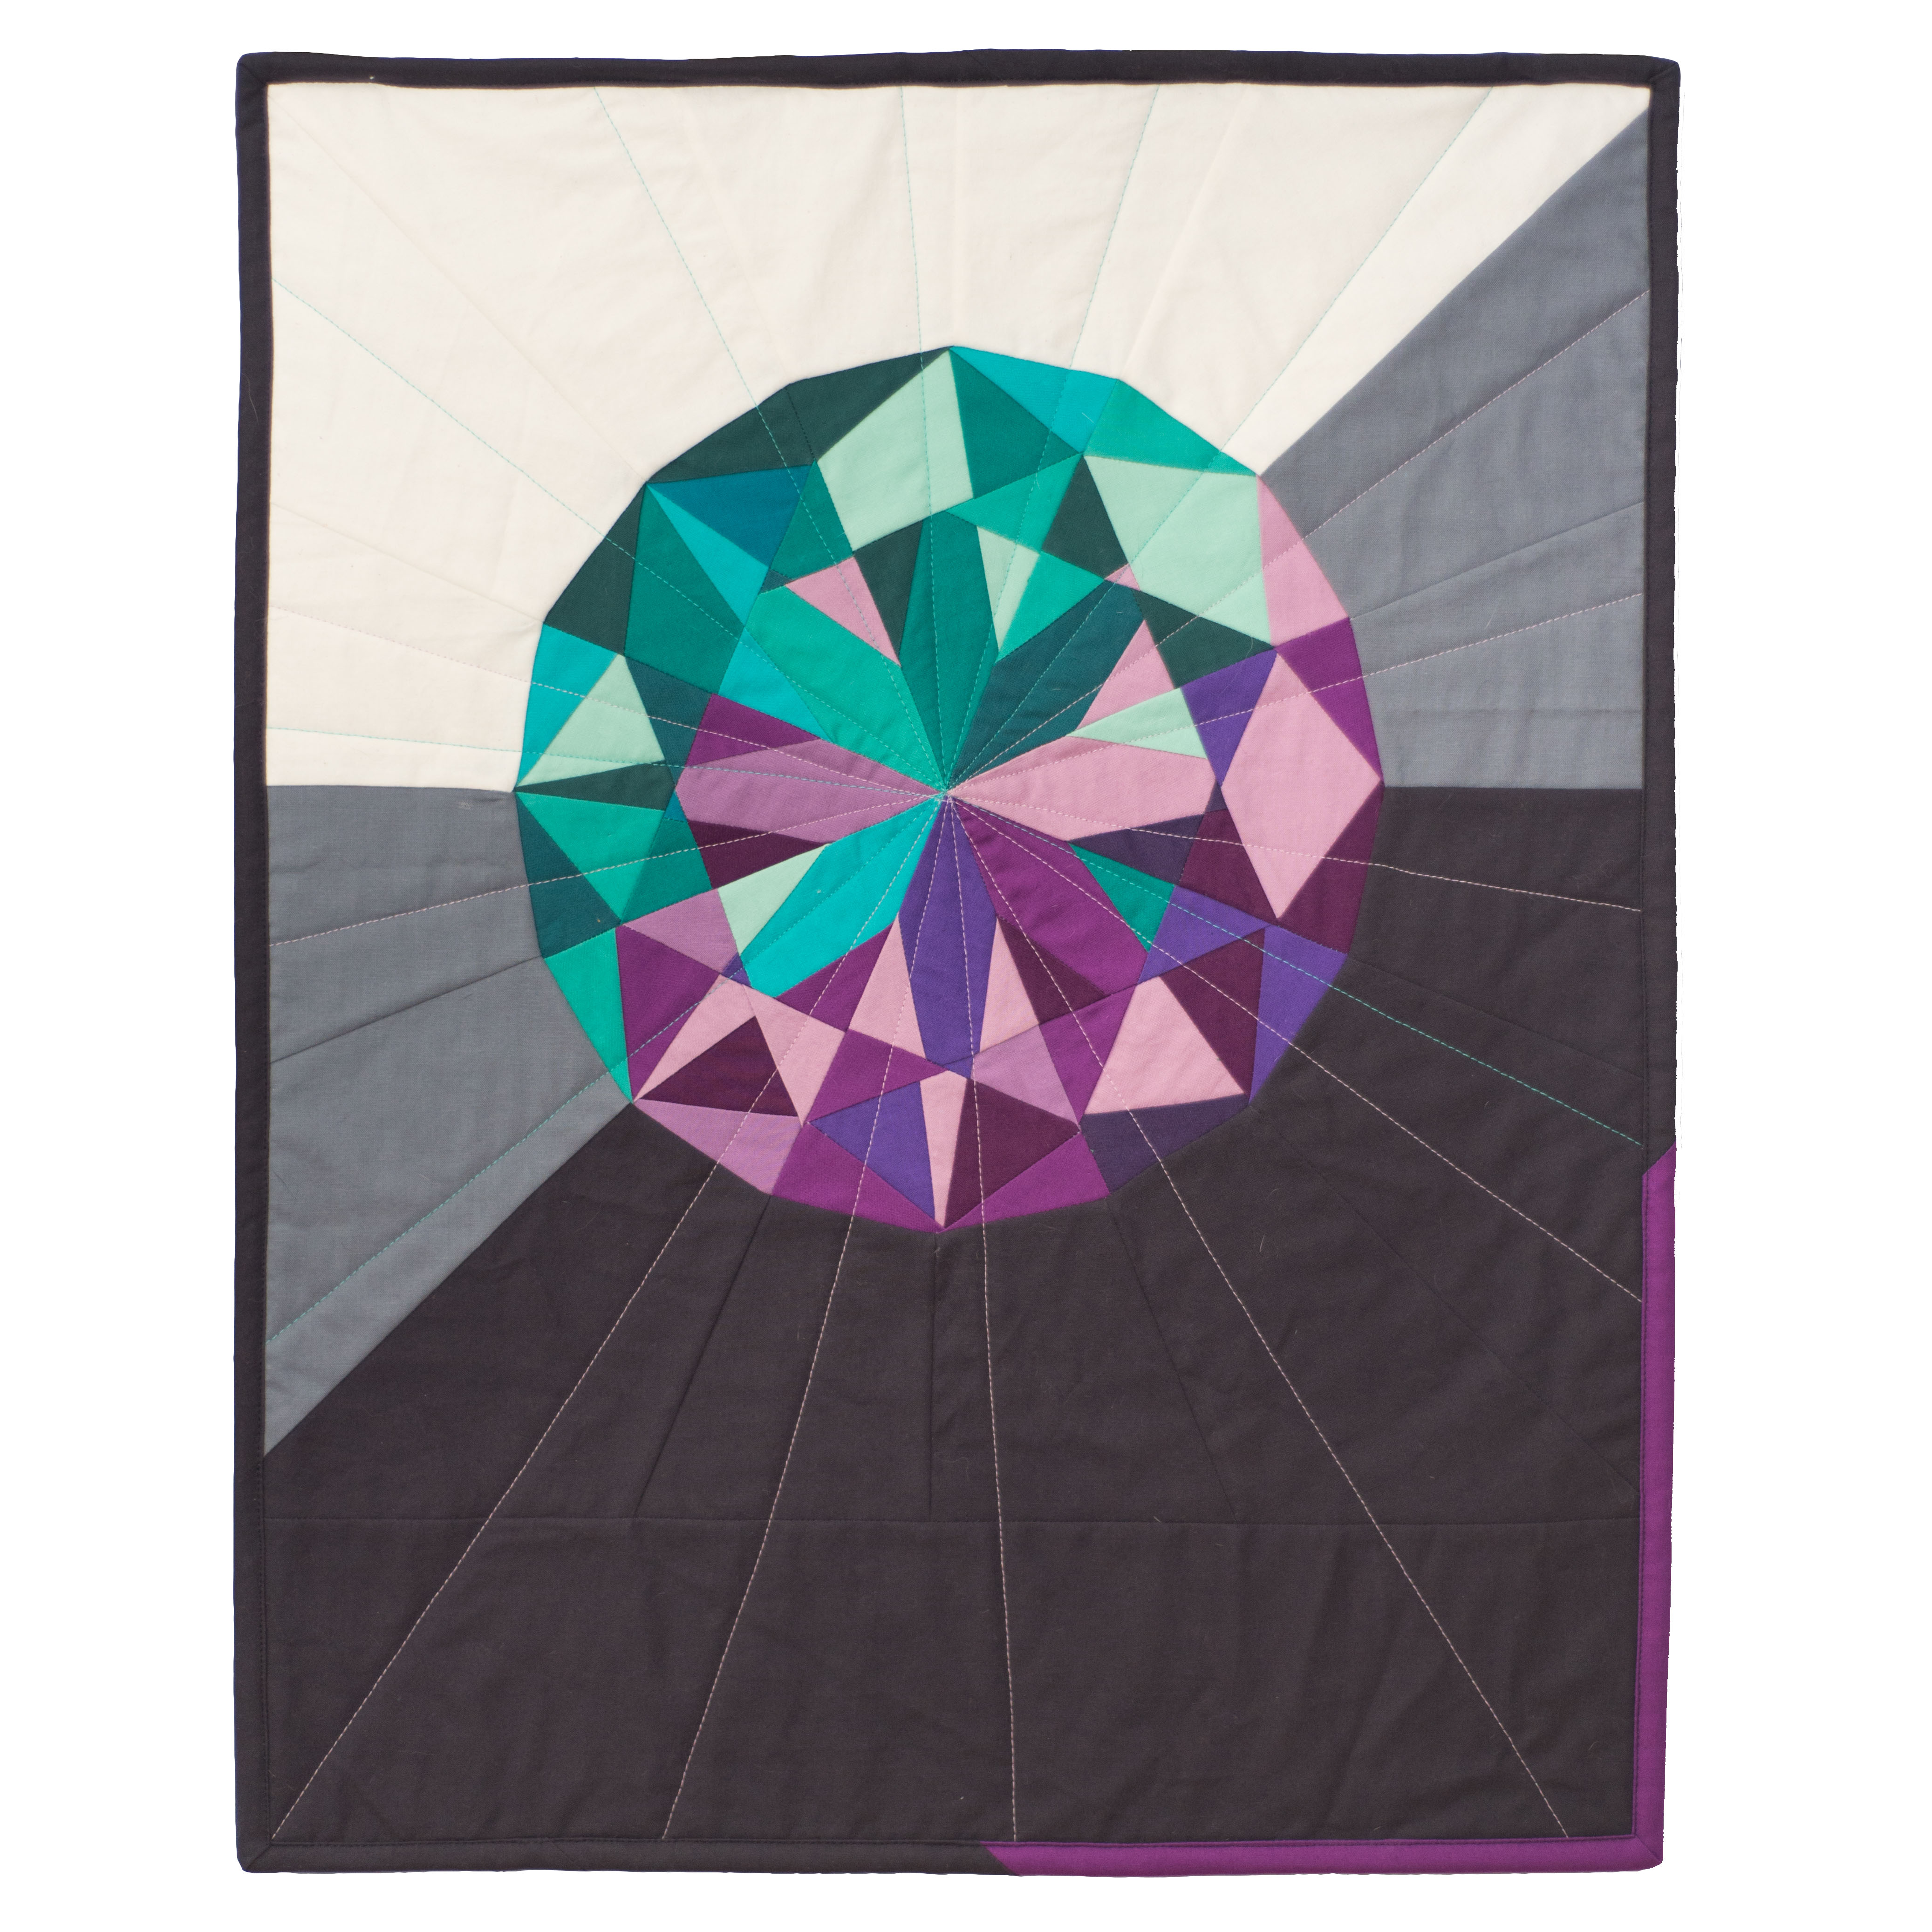 "<b>Amethyst</b><br>20"" x 20""<br>Cotton, cotton batting<br><a href=""mailto:hello@3rdstoryworkshop.com?Subject=Amethyst%20Gemology"" target=""_top"" rel=""noopener noreferrer"">Inquire</a>"